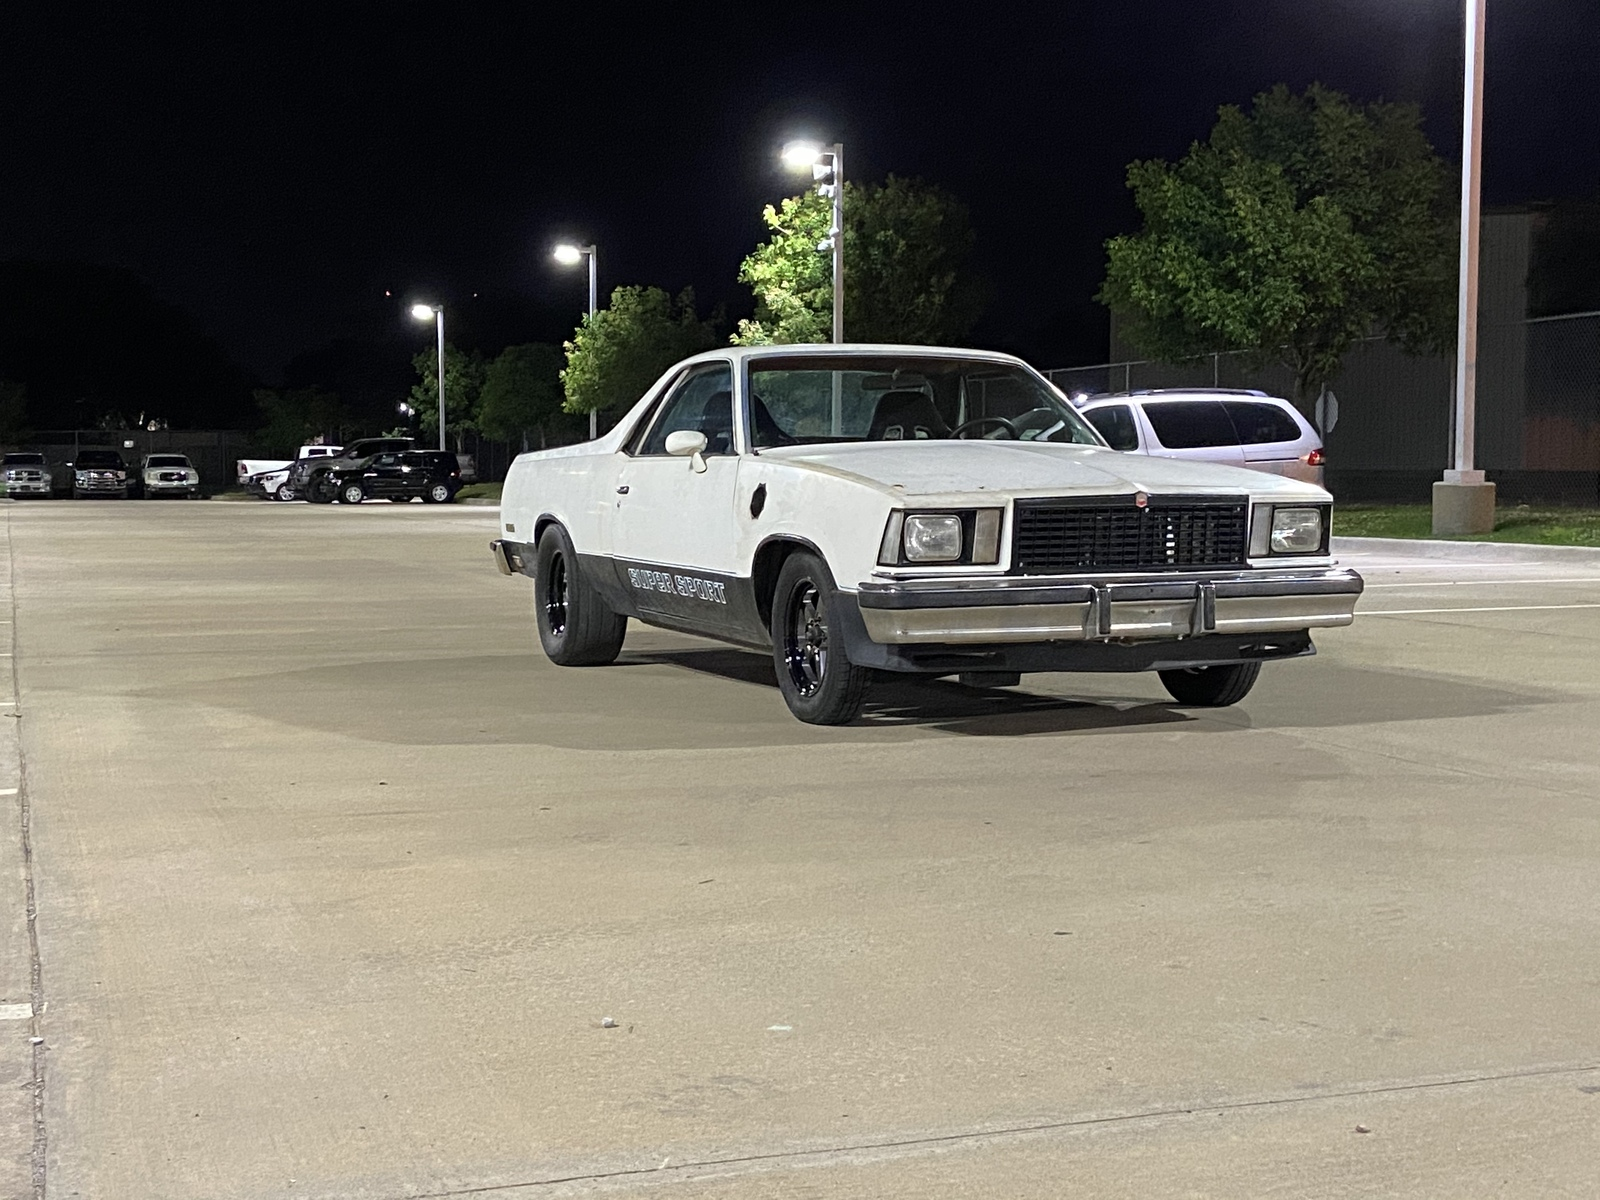 White/black 1979 Chevrolet El Camino SS